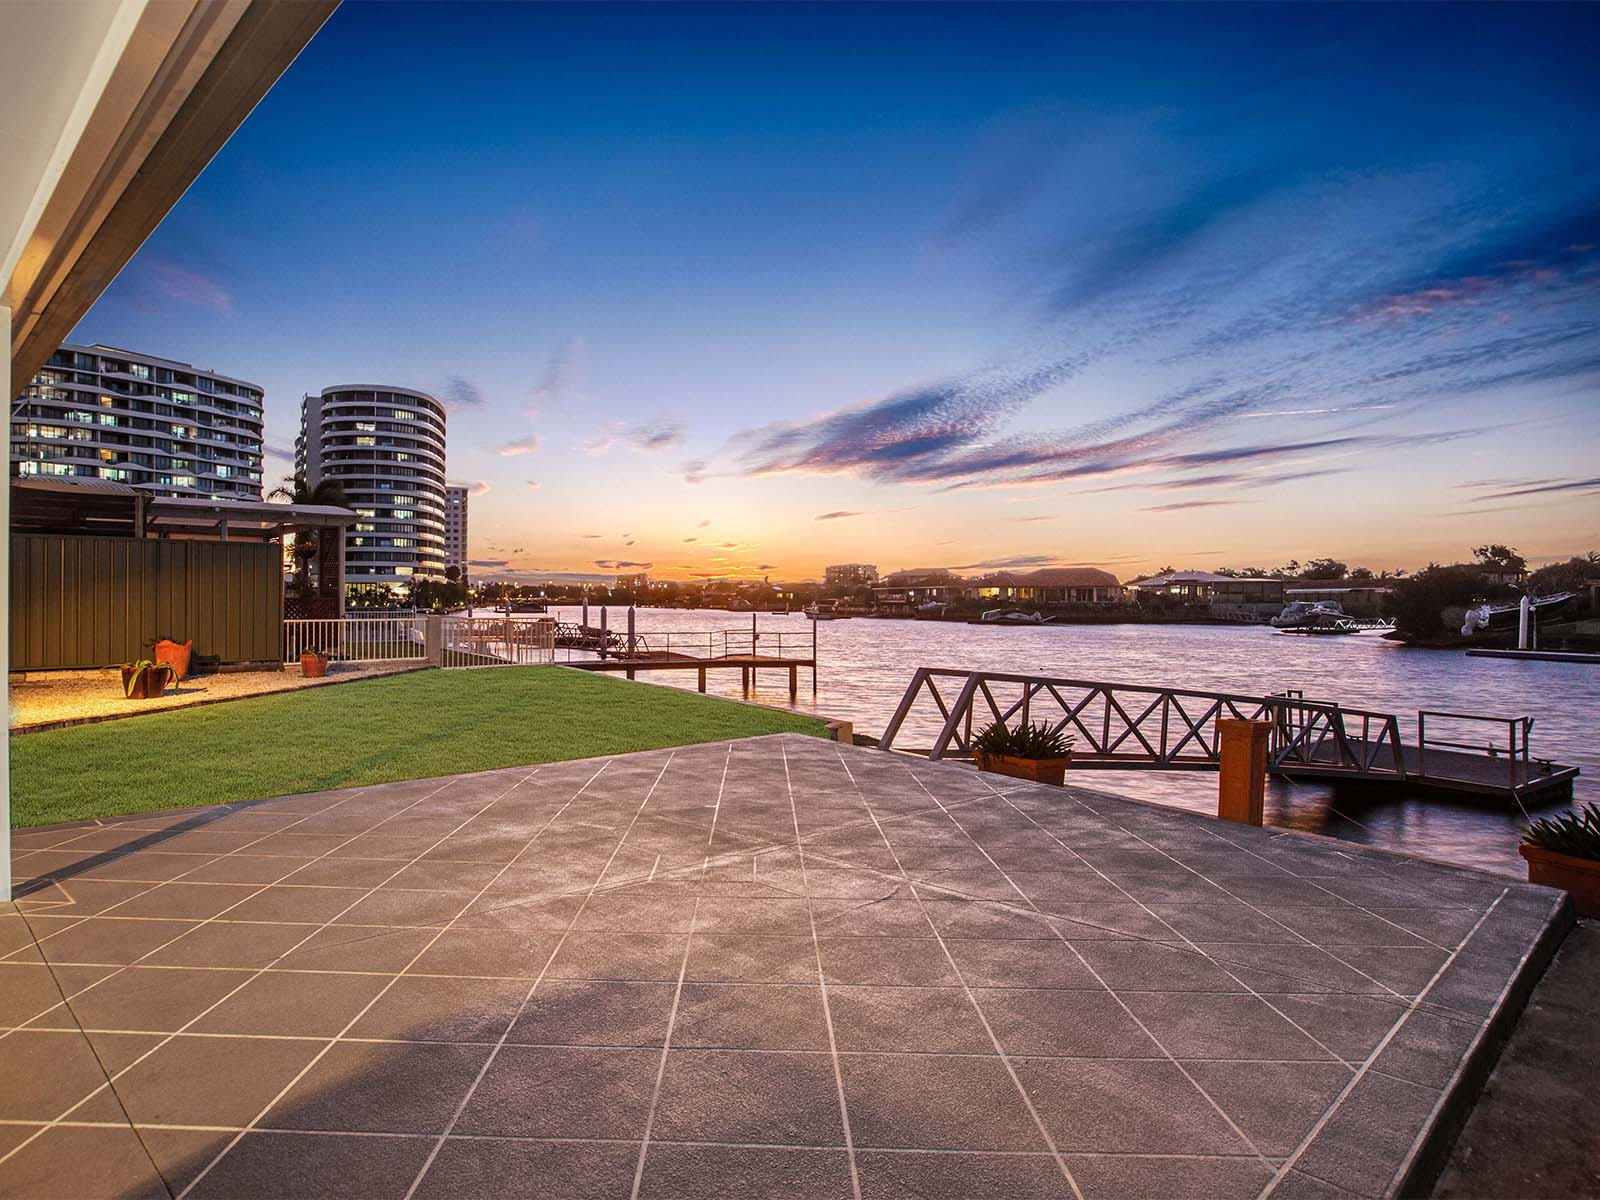 Waterfront Location With Stunning Outlook